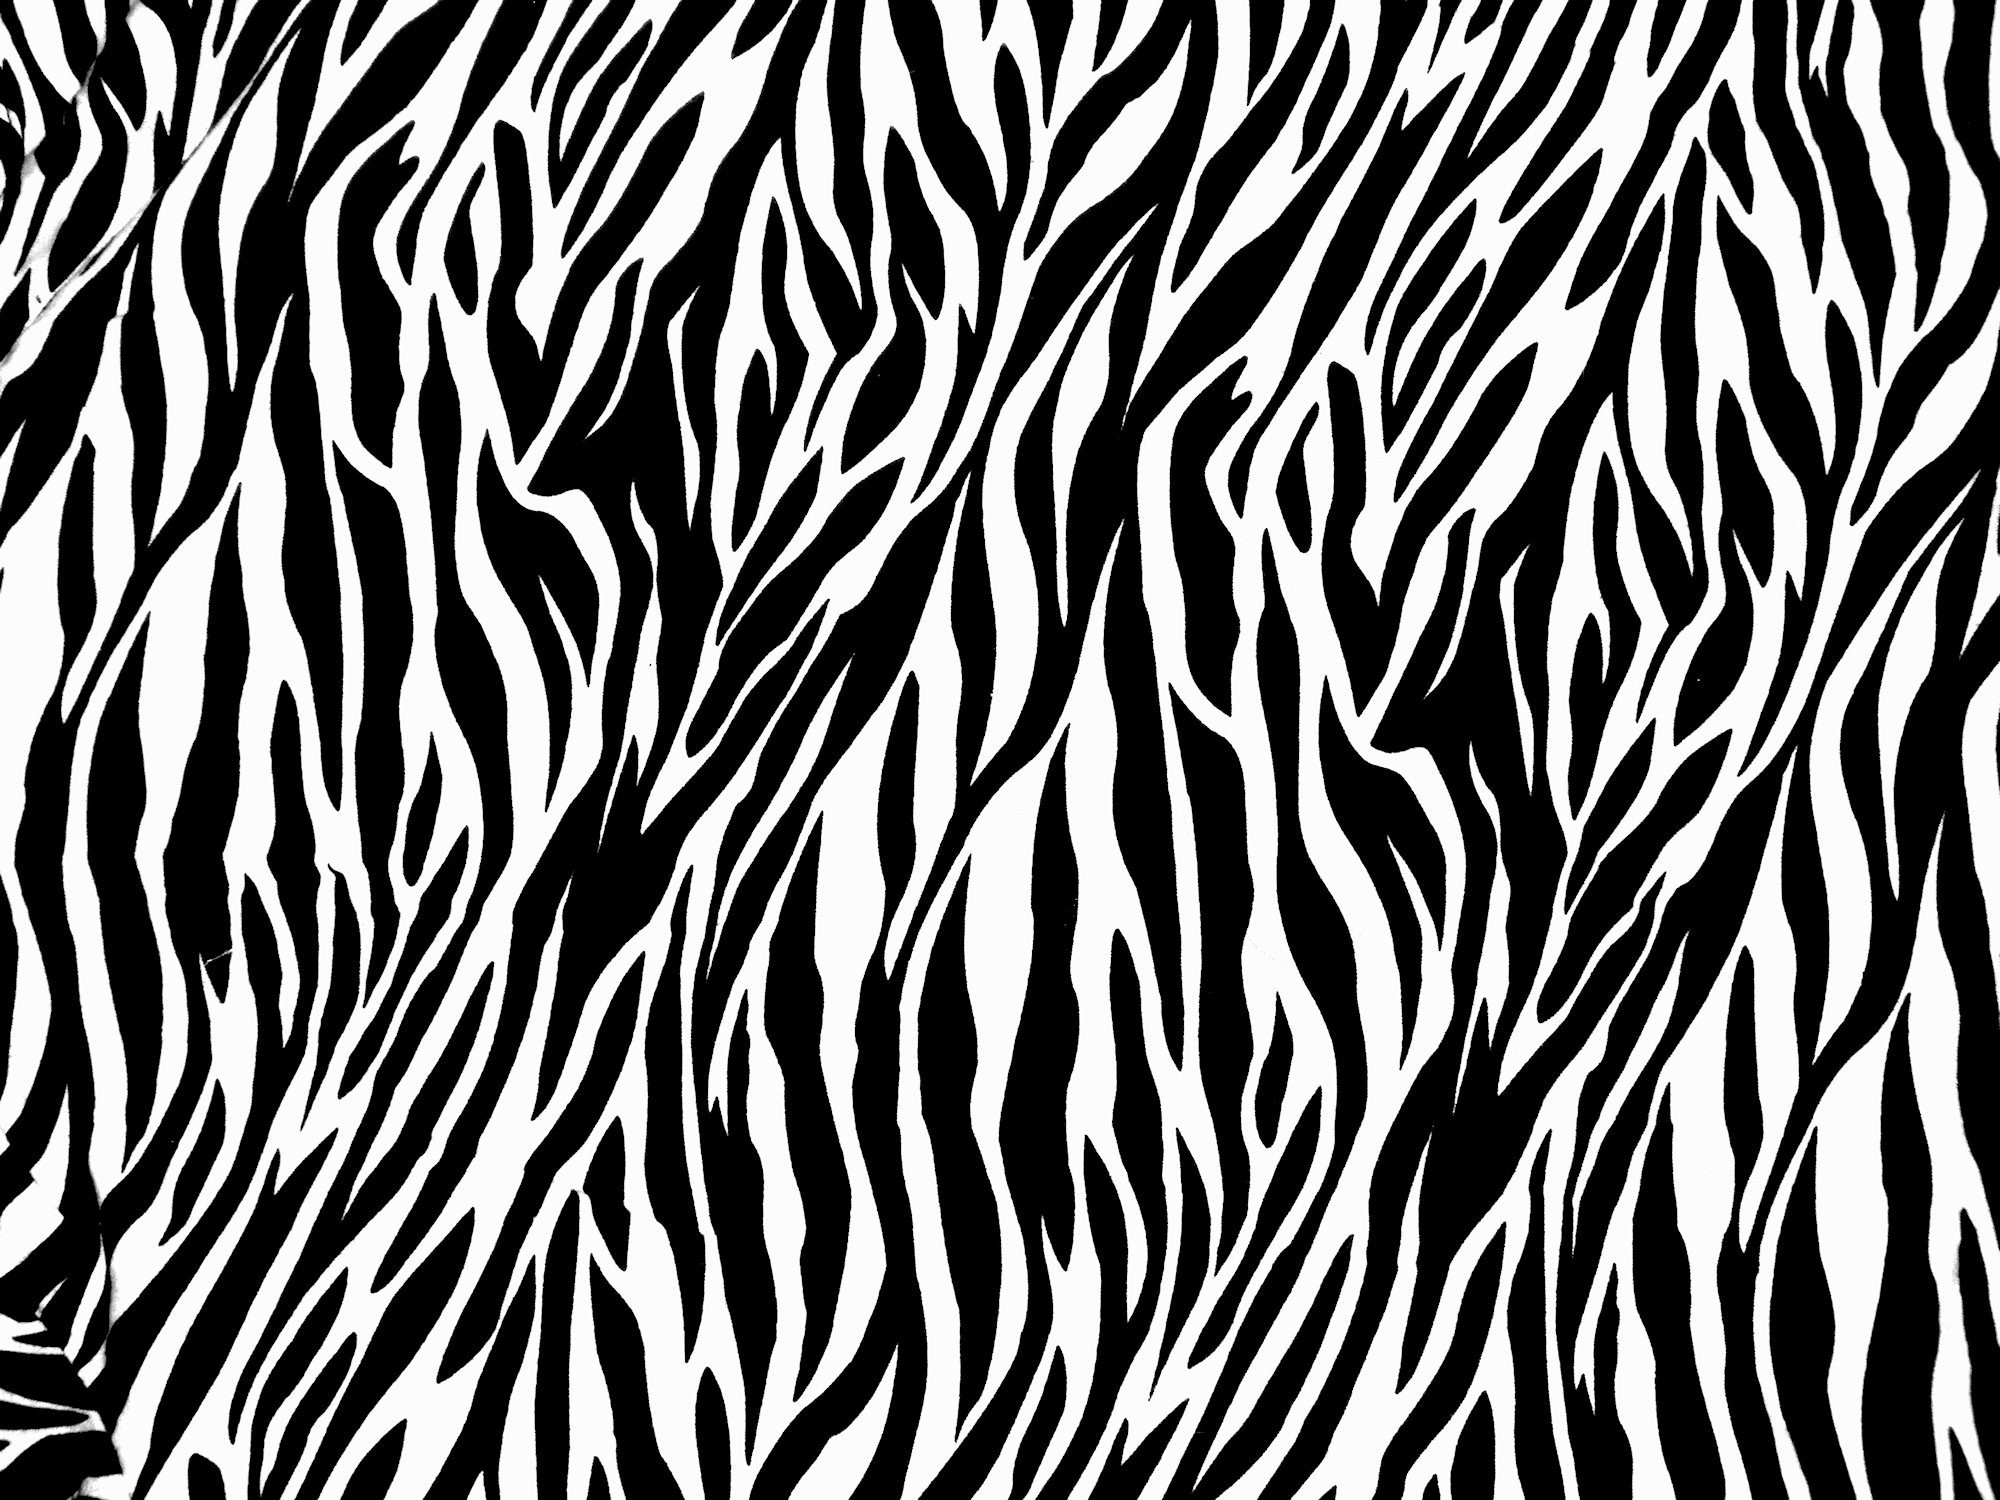 Zebra-print-texture-by-ghoulskout-on-deviantart.png 2,000 - Zebra Print PNG